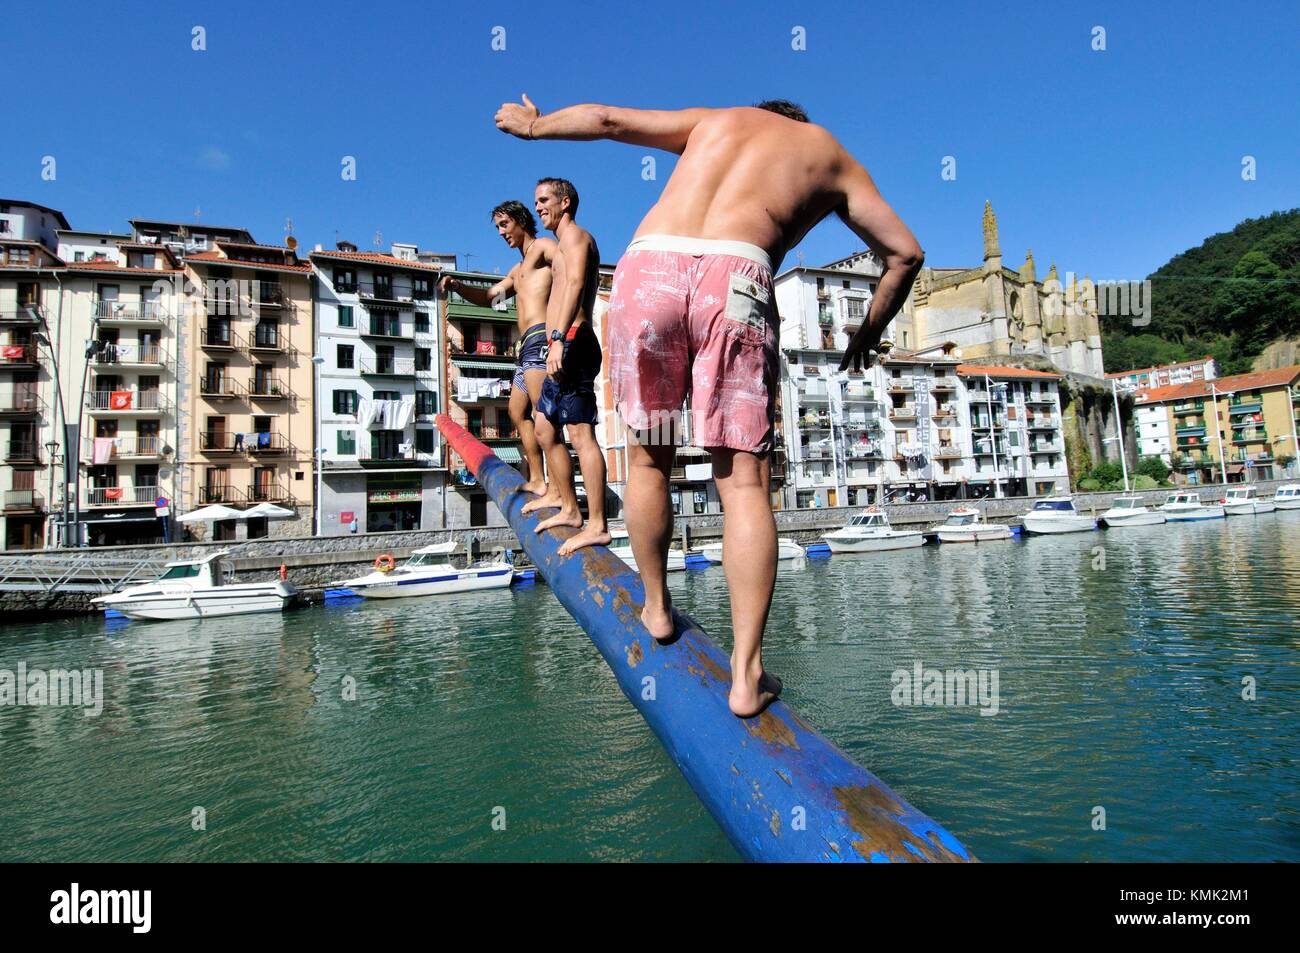 Cucaña (spanish), Greasy pole, grease pole or greased pole refers to a pole that has been made slippery and - Stock Image